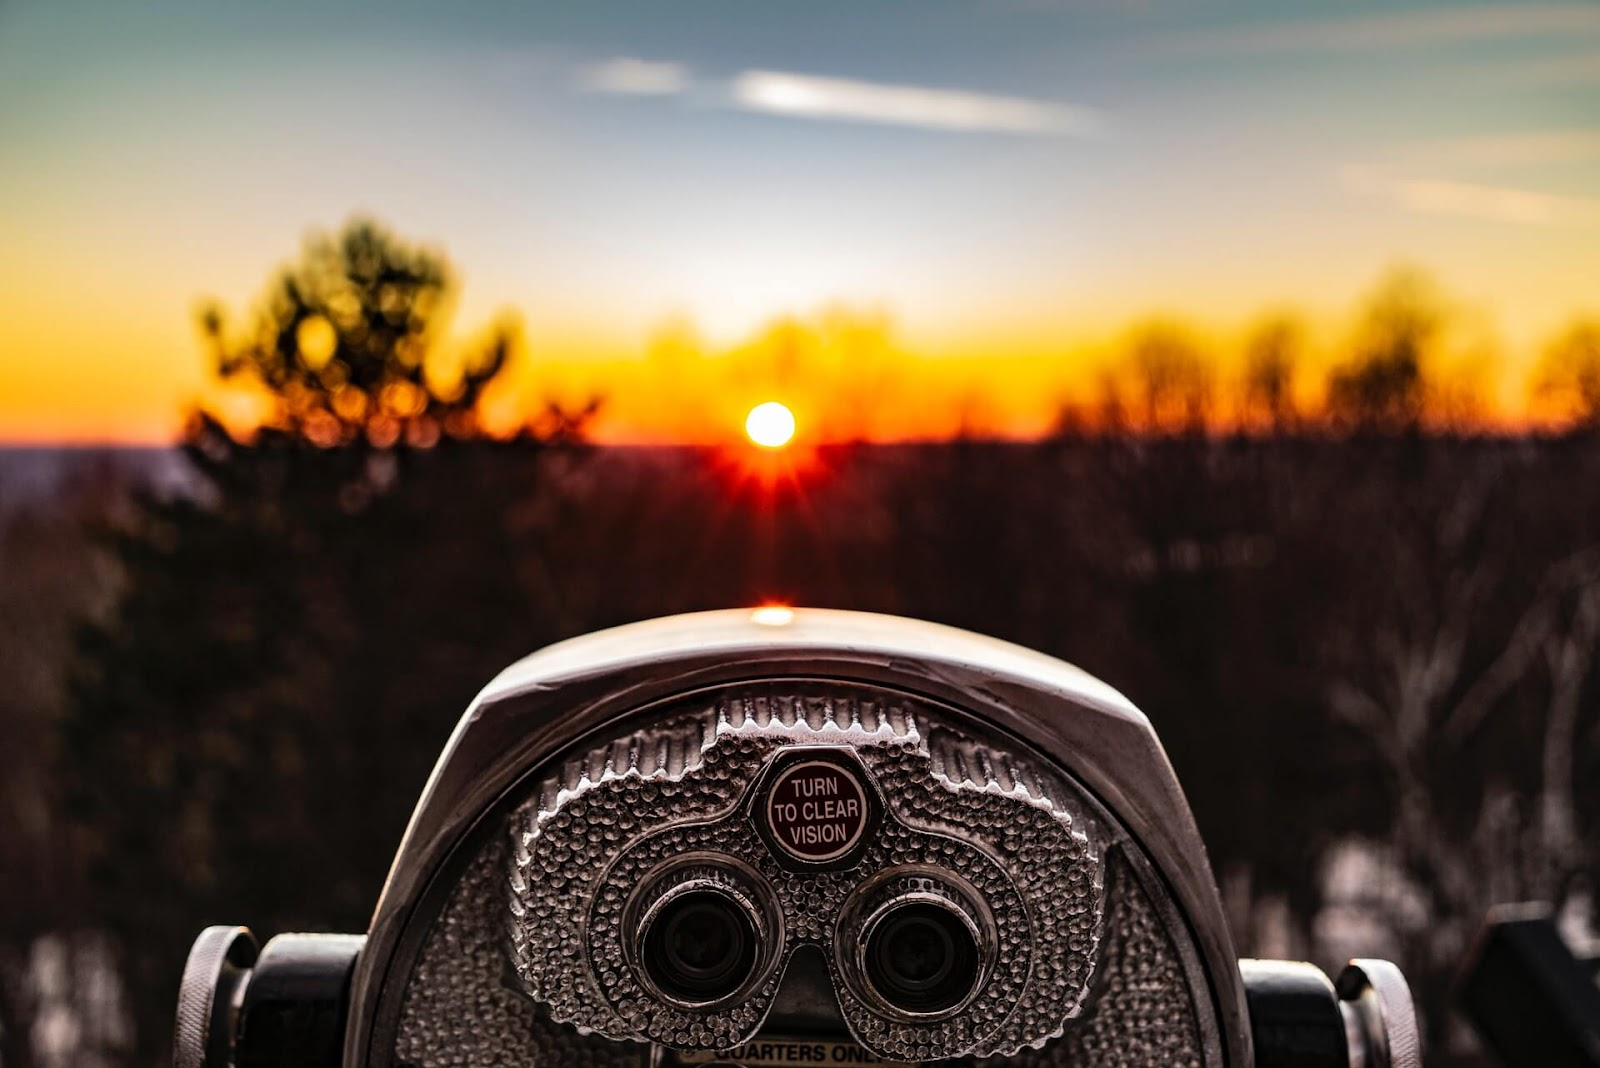 Telescope pointing at a sunset